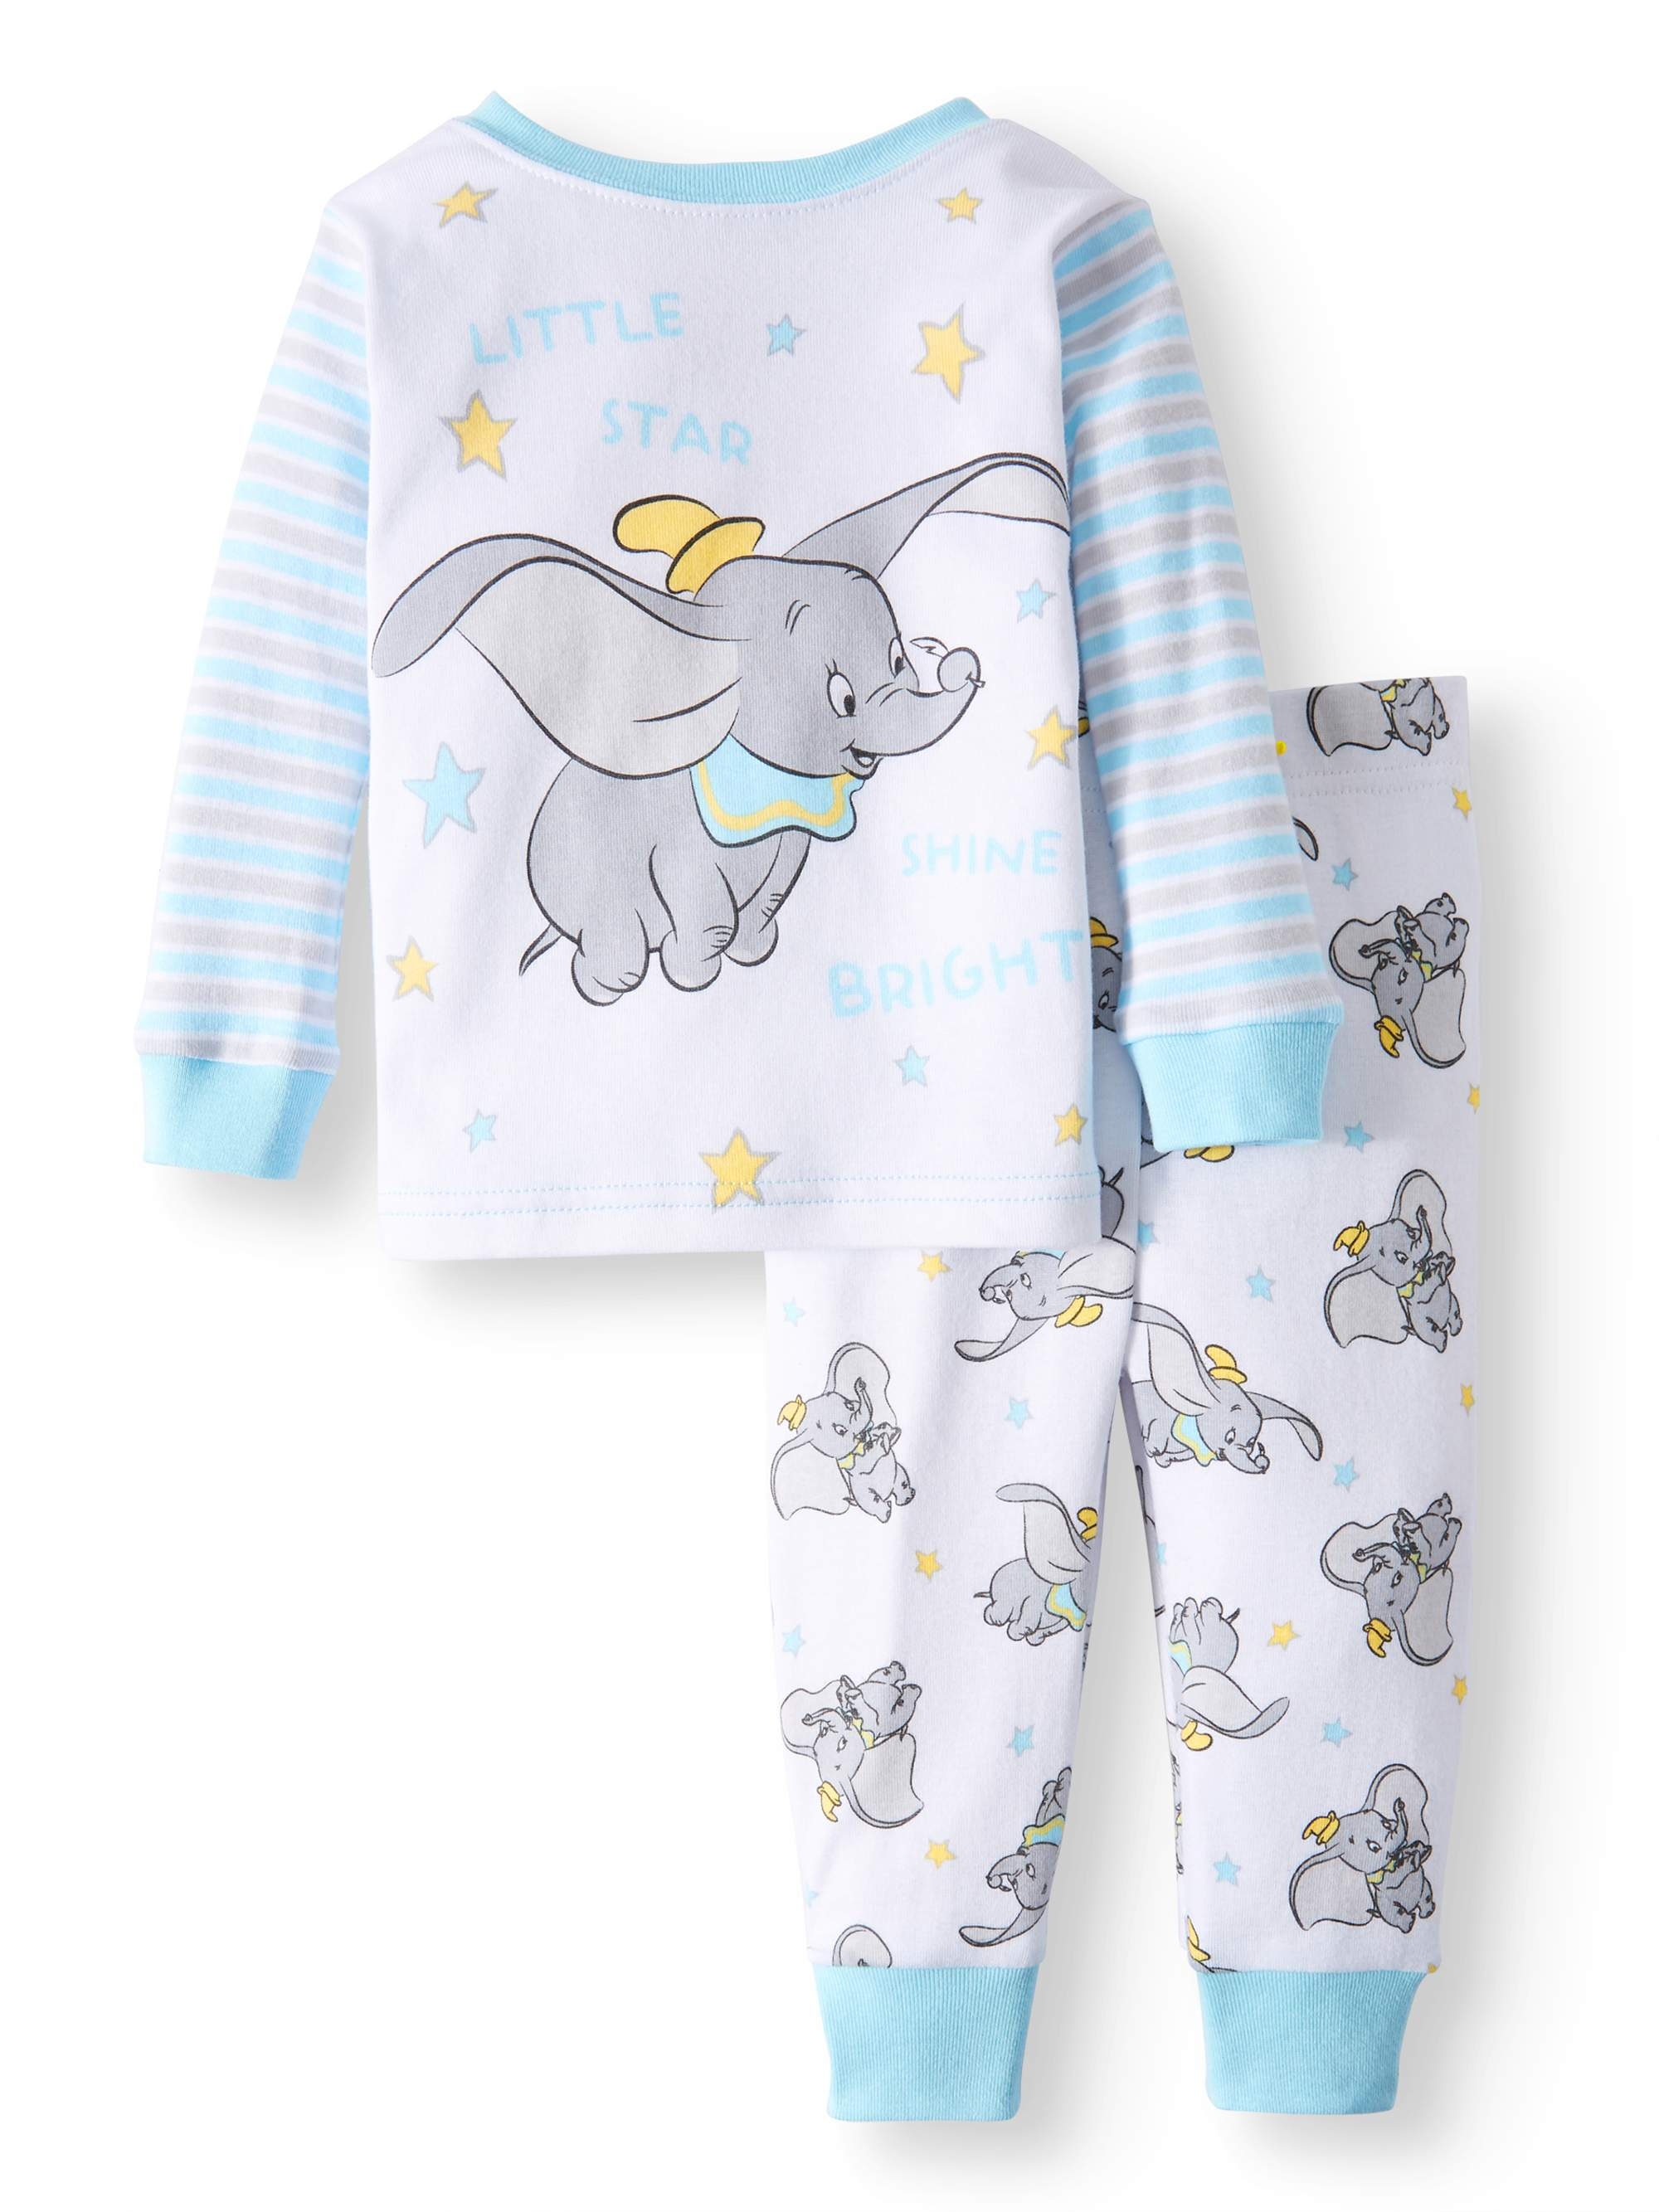 Bad Set For Baby Dumbo Cotton Tight Fit Pajamas 2 Piece Set Baby Boys Walmart